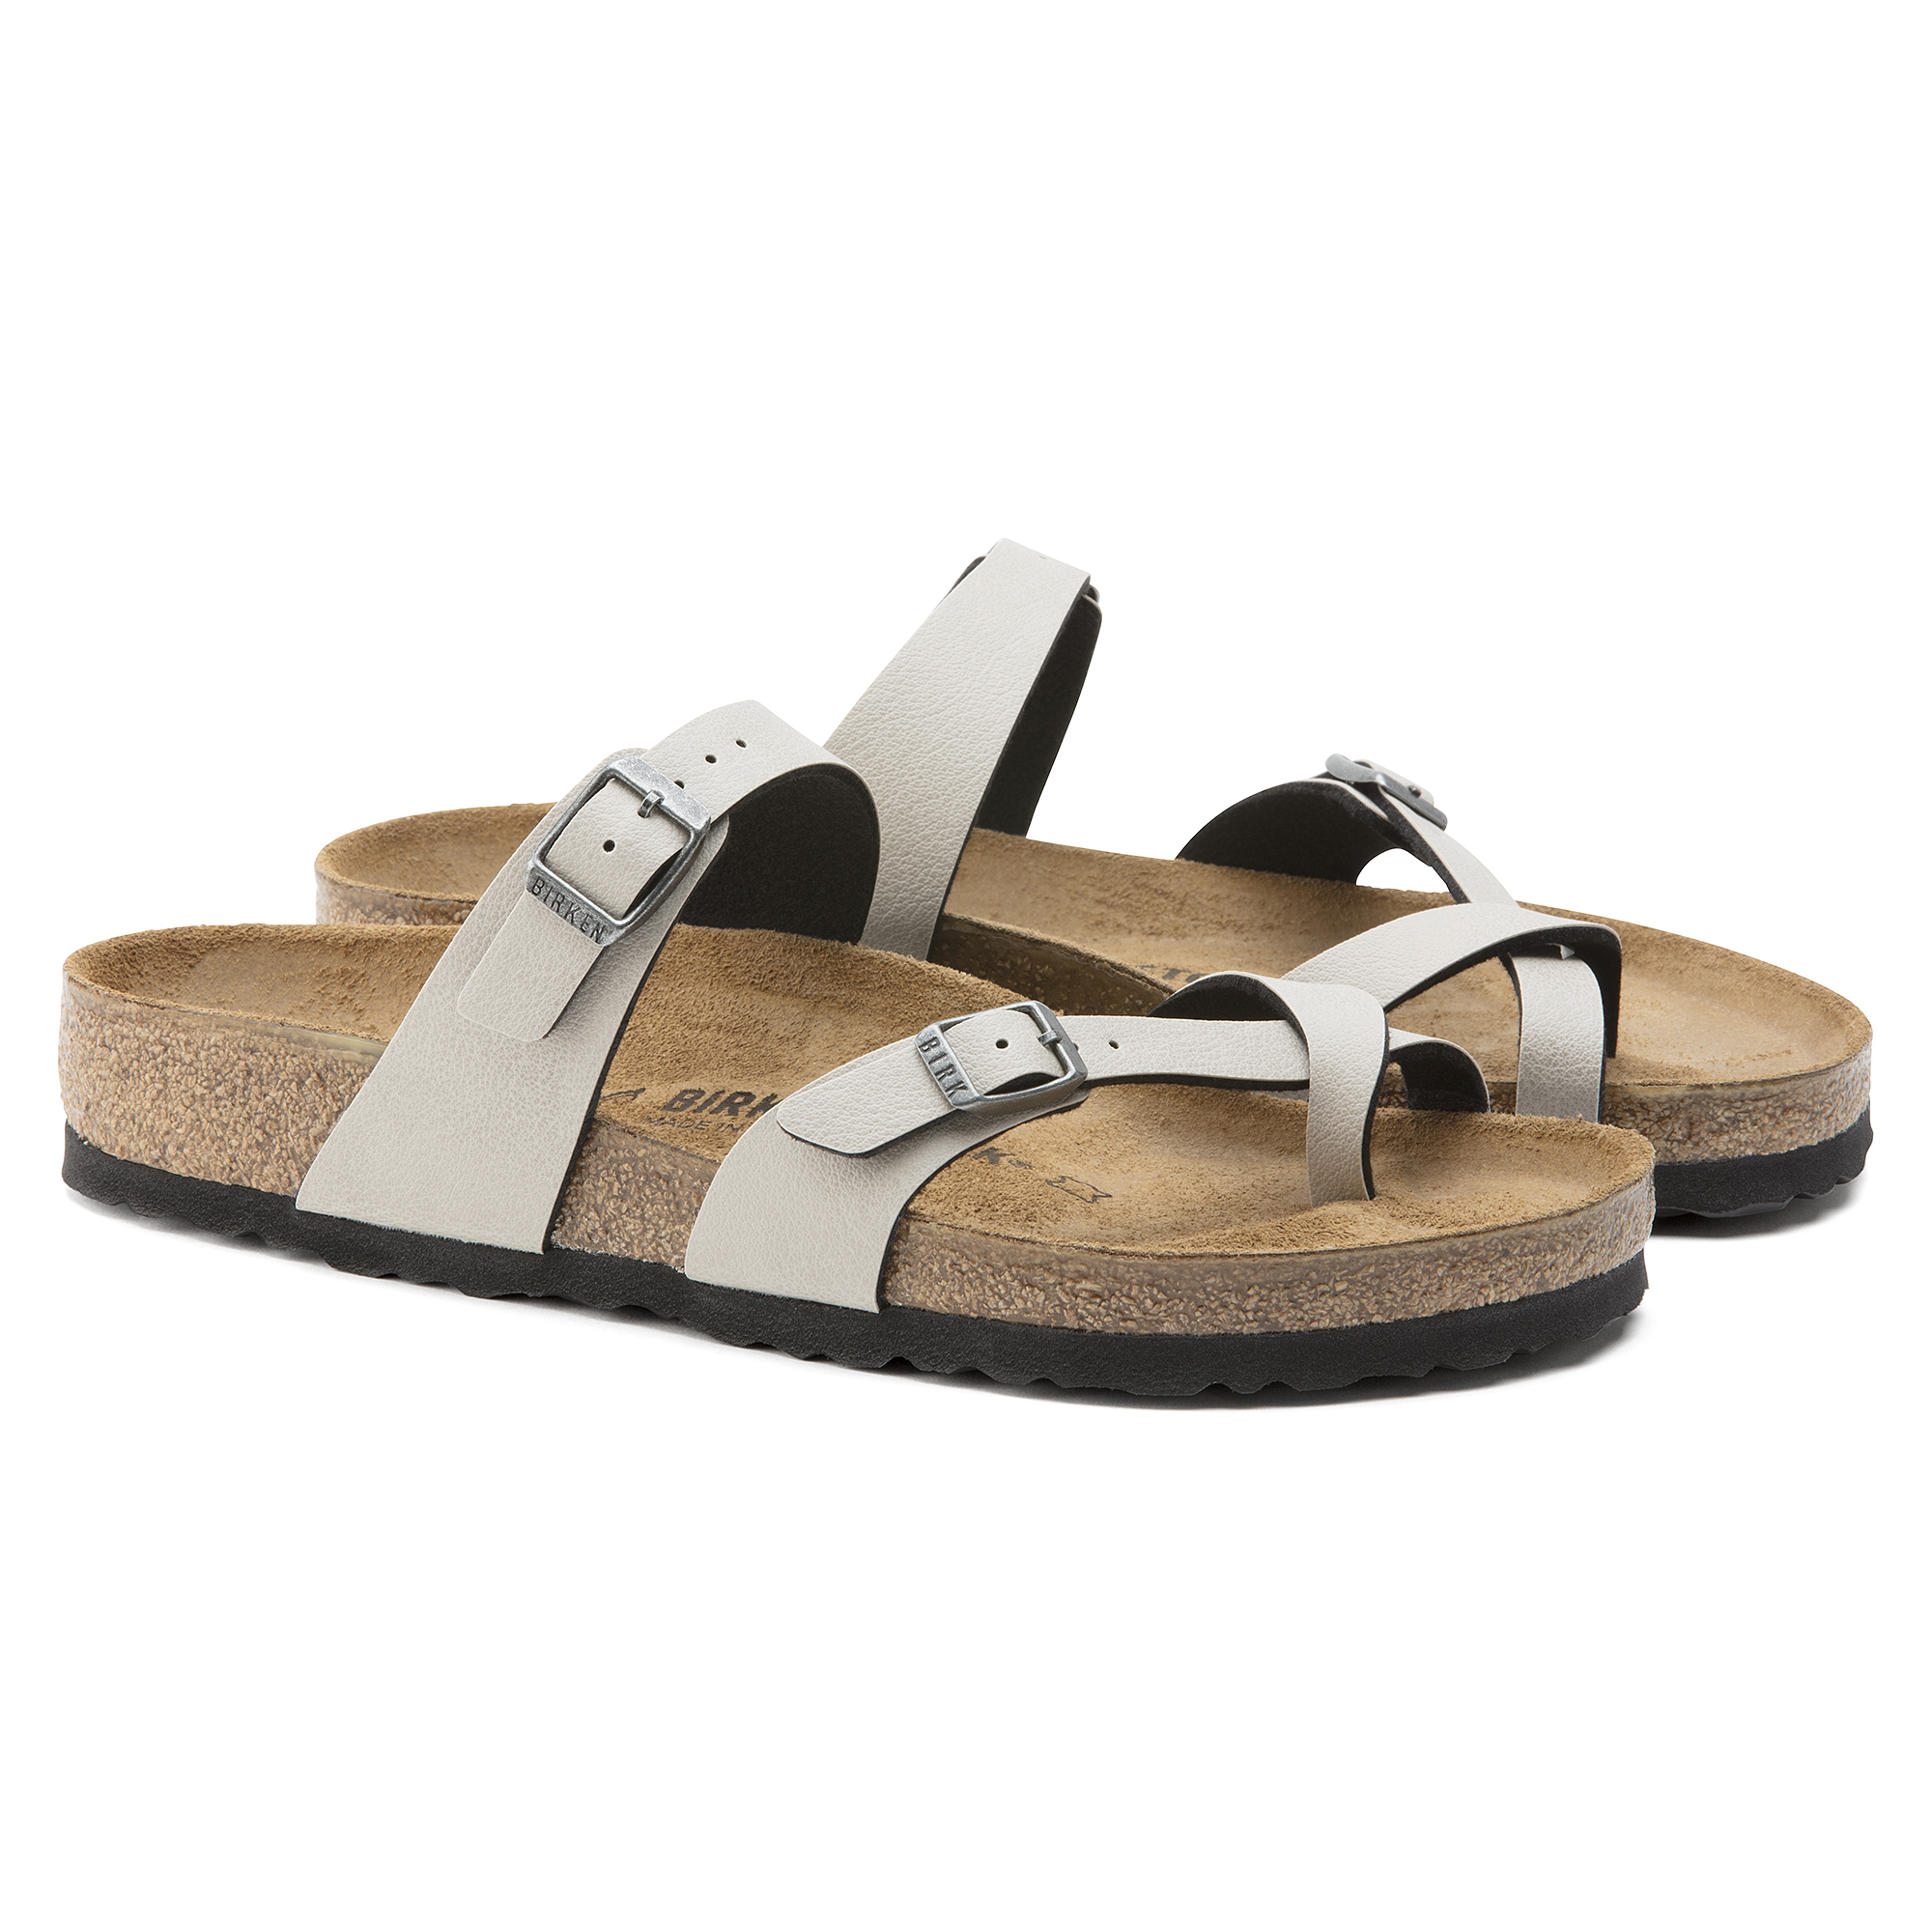 Mayari Birko Flor Pull Up Stone Shop Online At Birkenstock